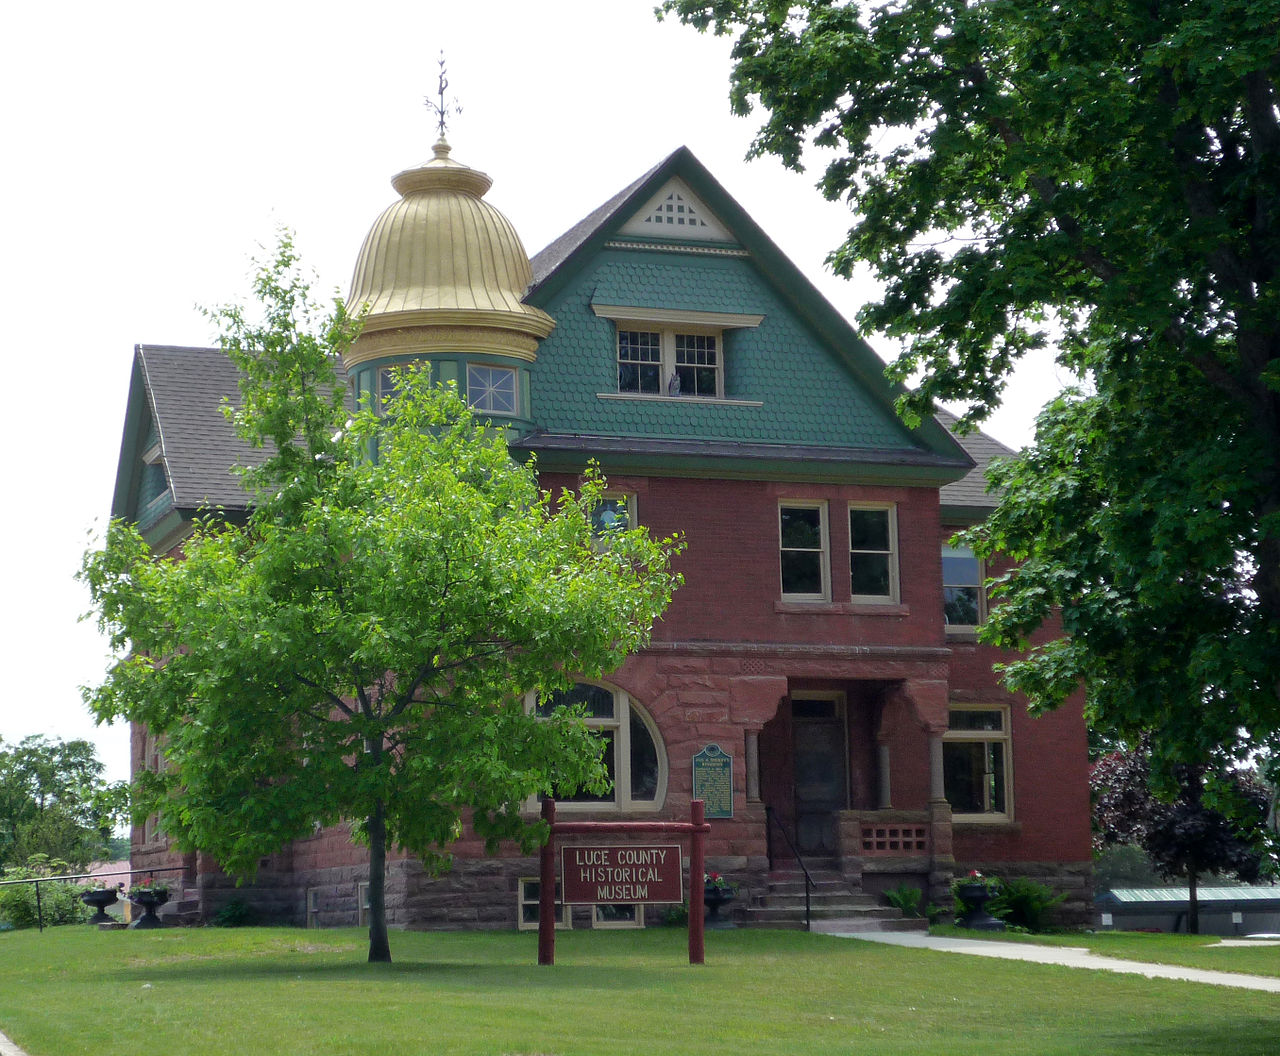 The Luce County Historical Museum